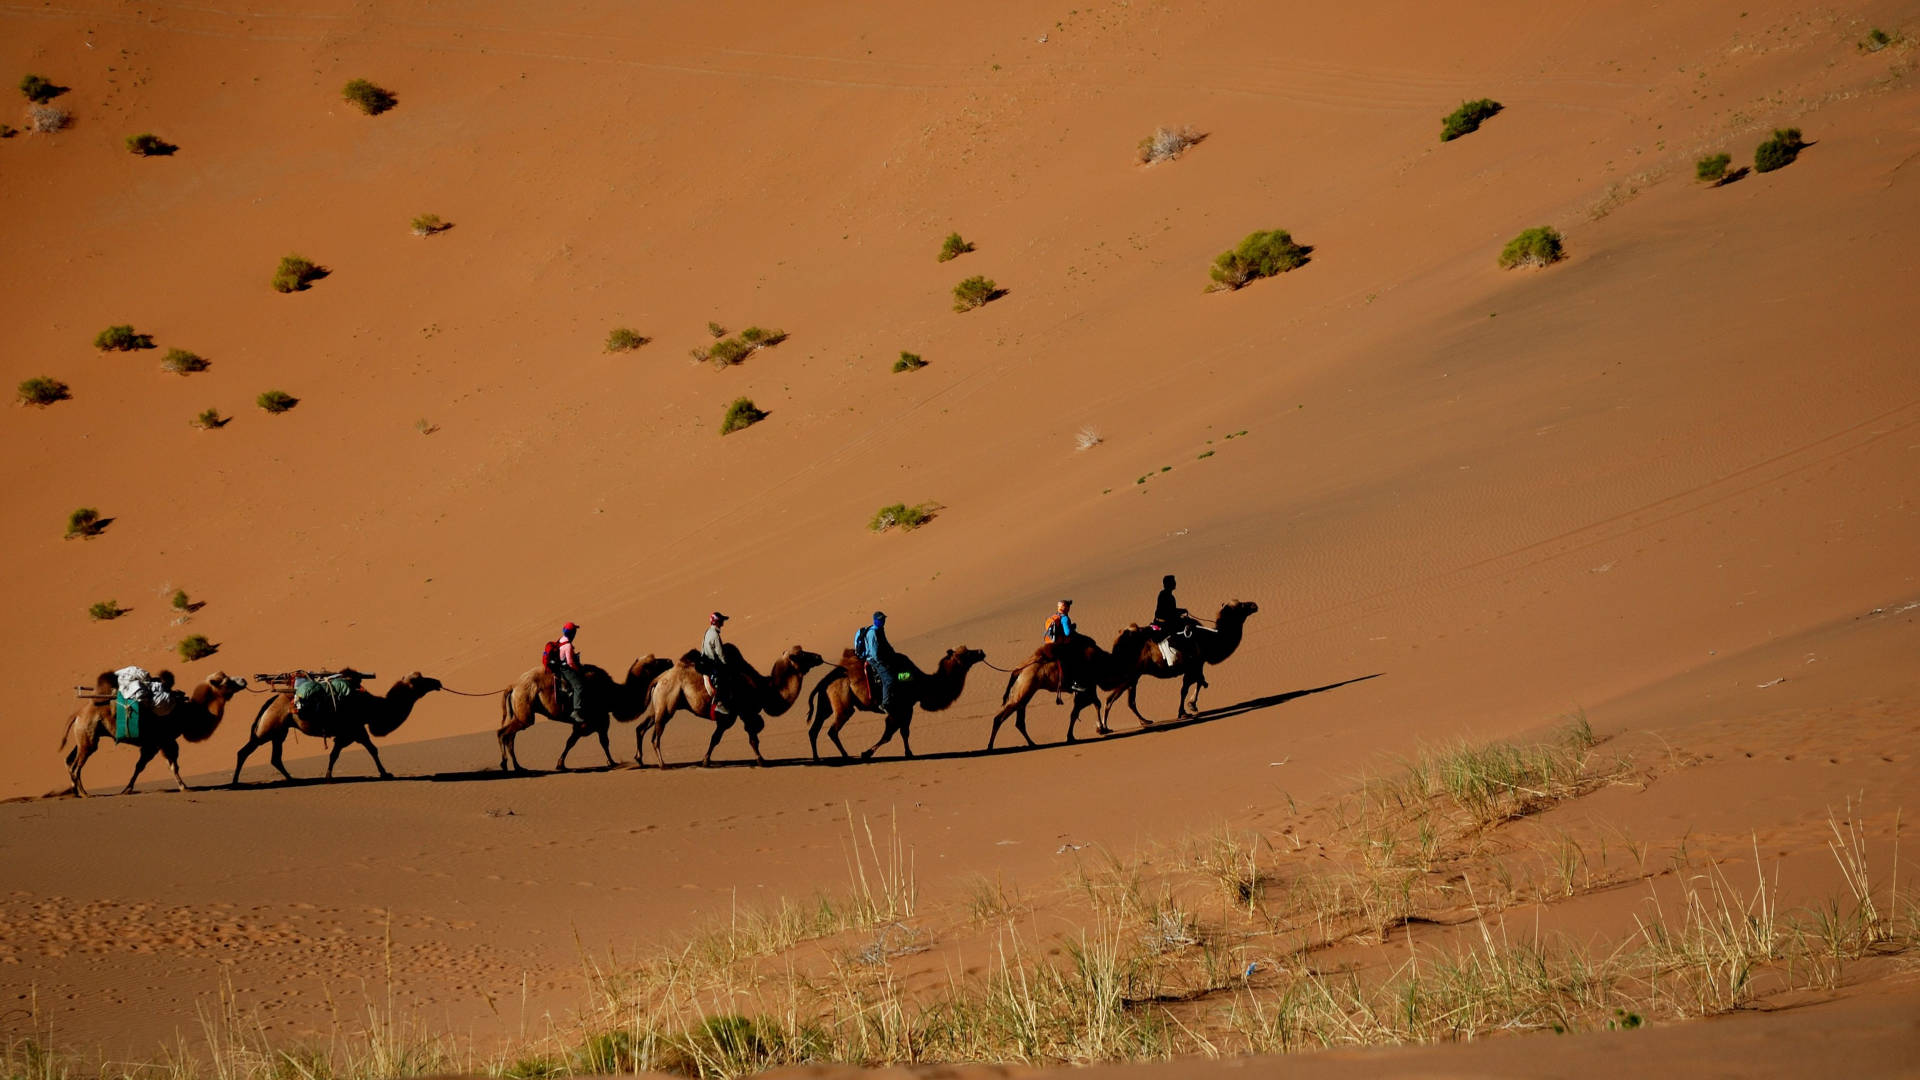 Custom Travel Planner Network-Mongolia-Camel Caravan in Gobi Desert